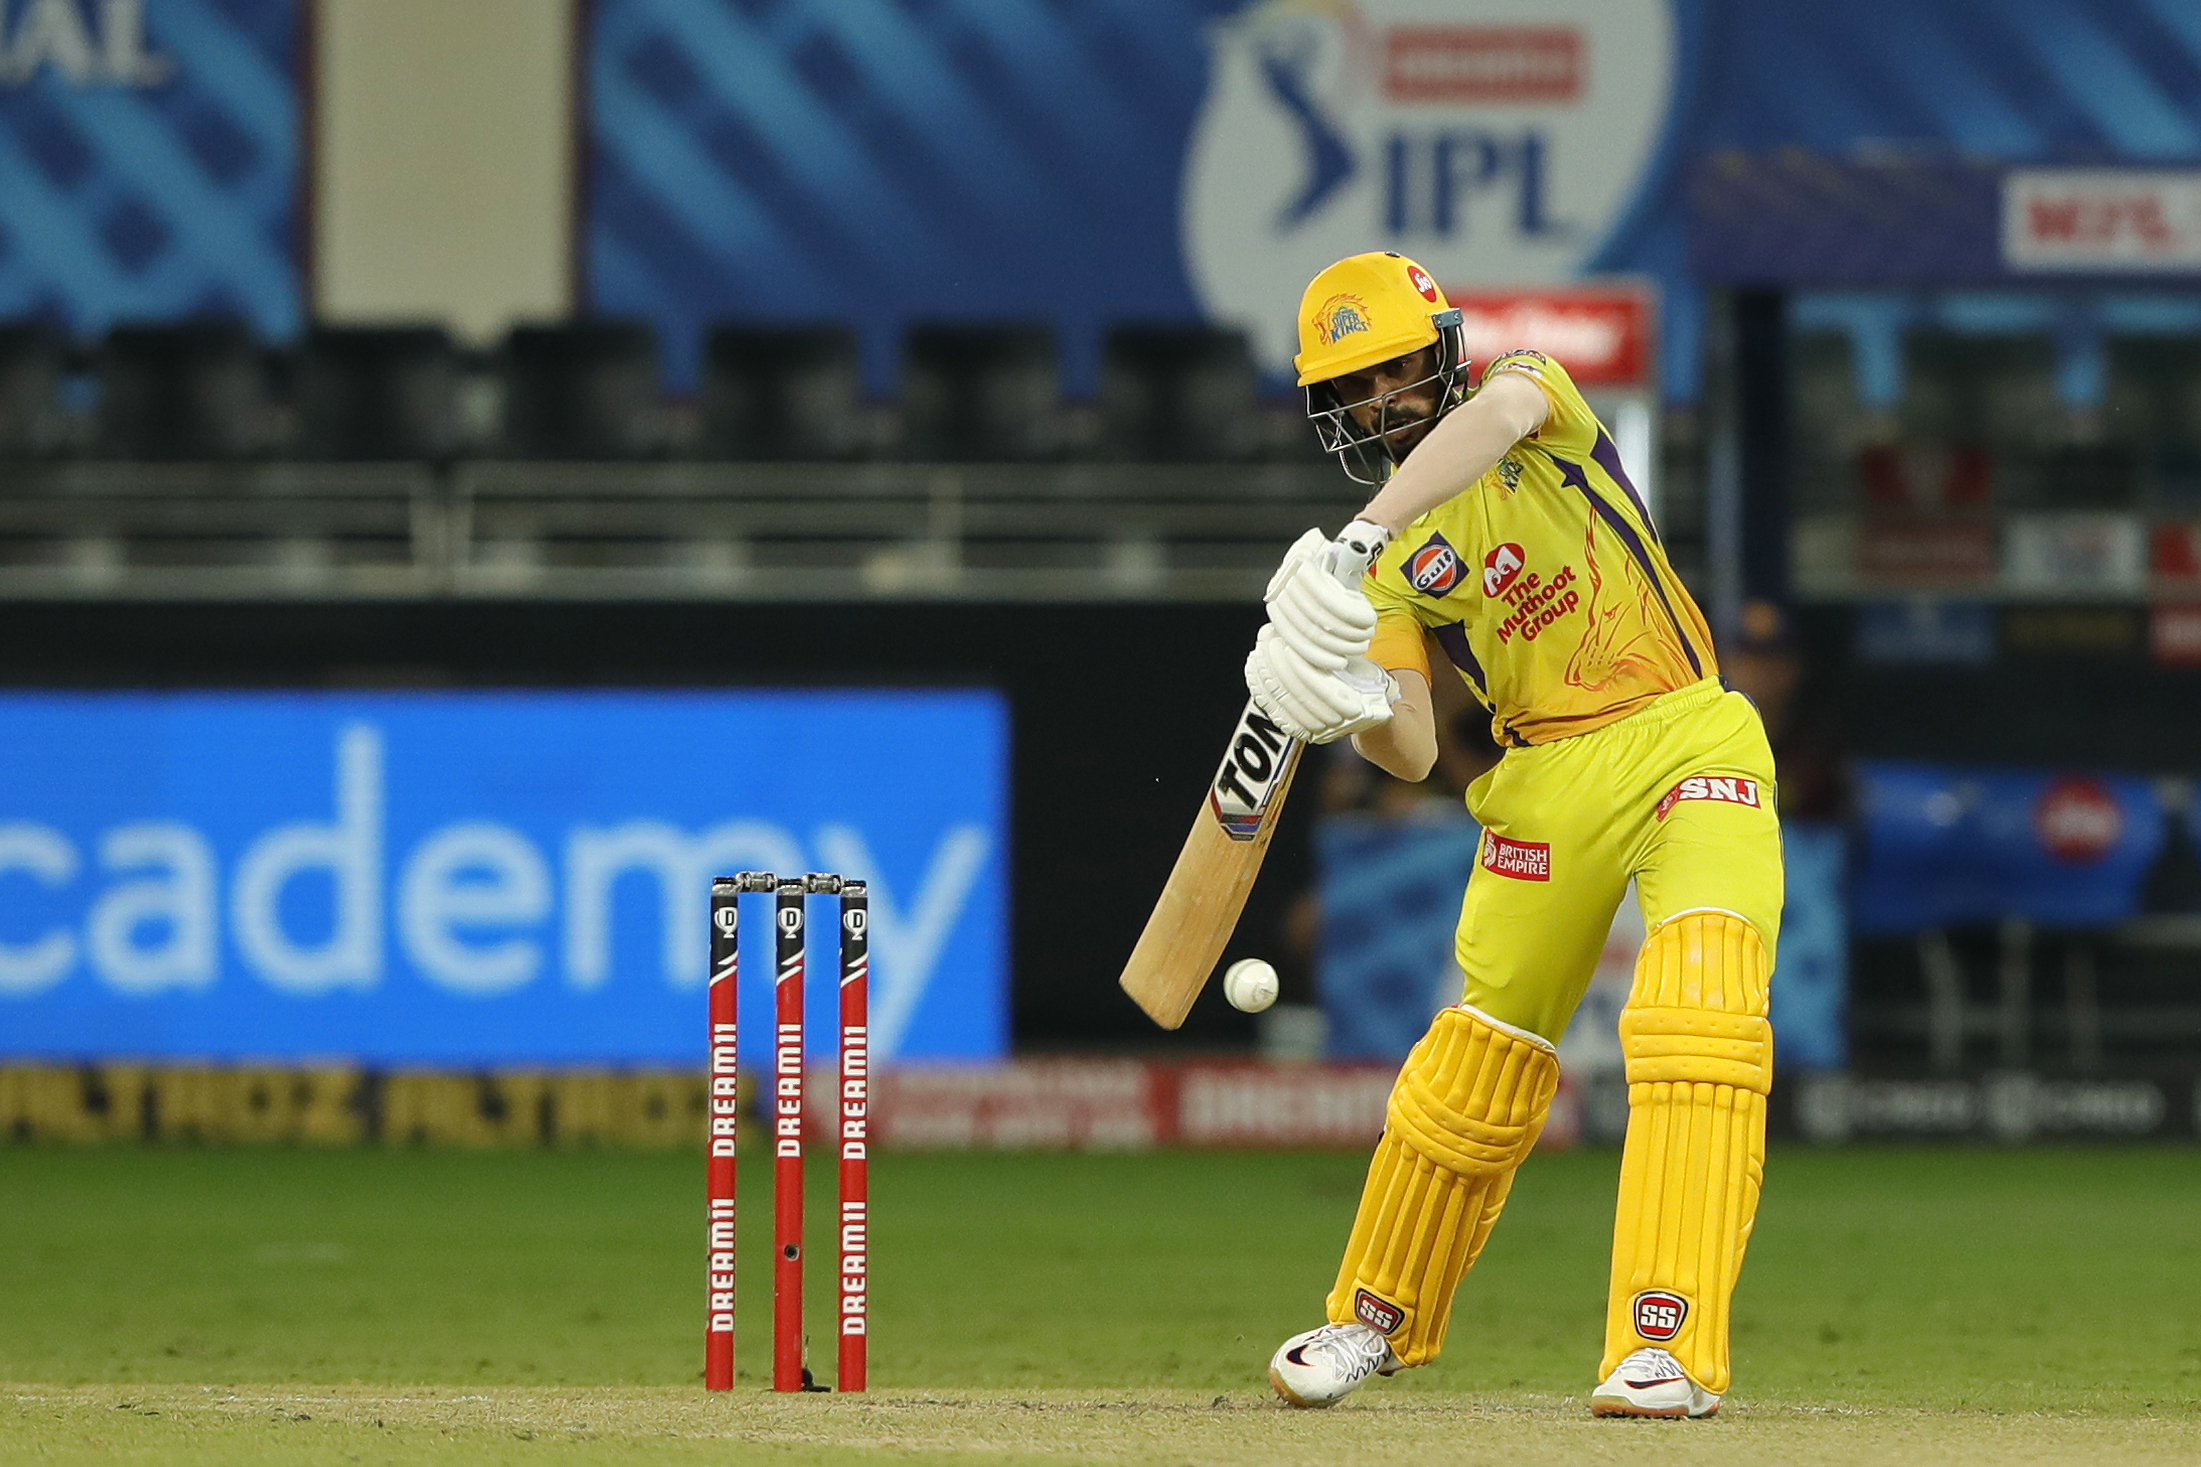 Ruturaj Gaikwad made a sublime 72 | BCCI/IPL